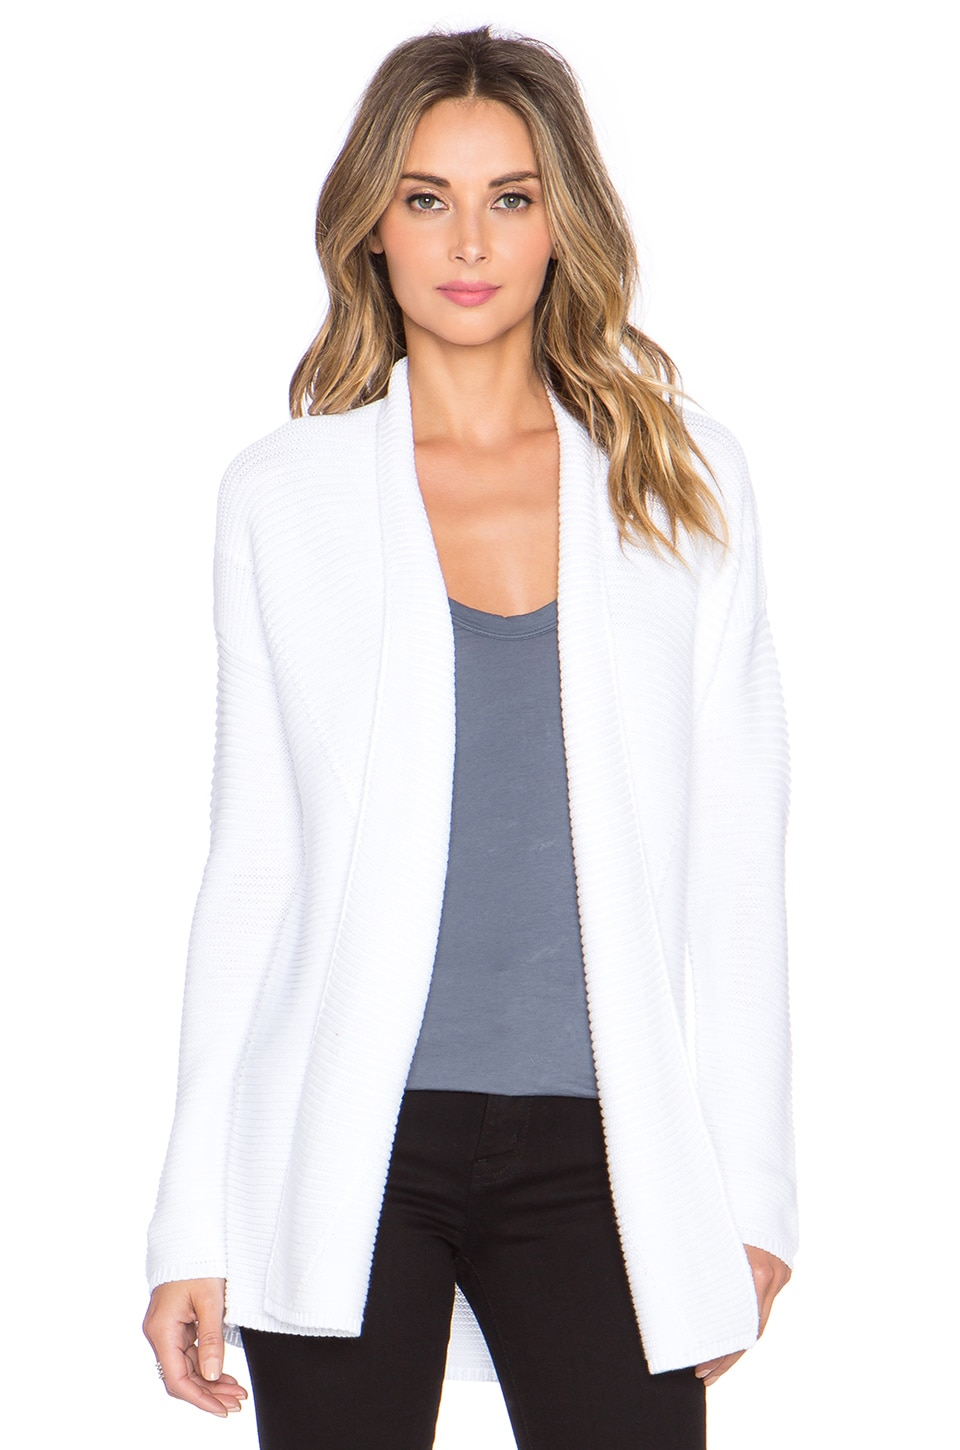 lyst dkny sweater clothing product white gallery front in drapes whitewhite drape